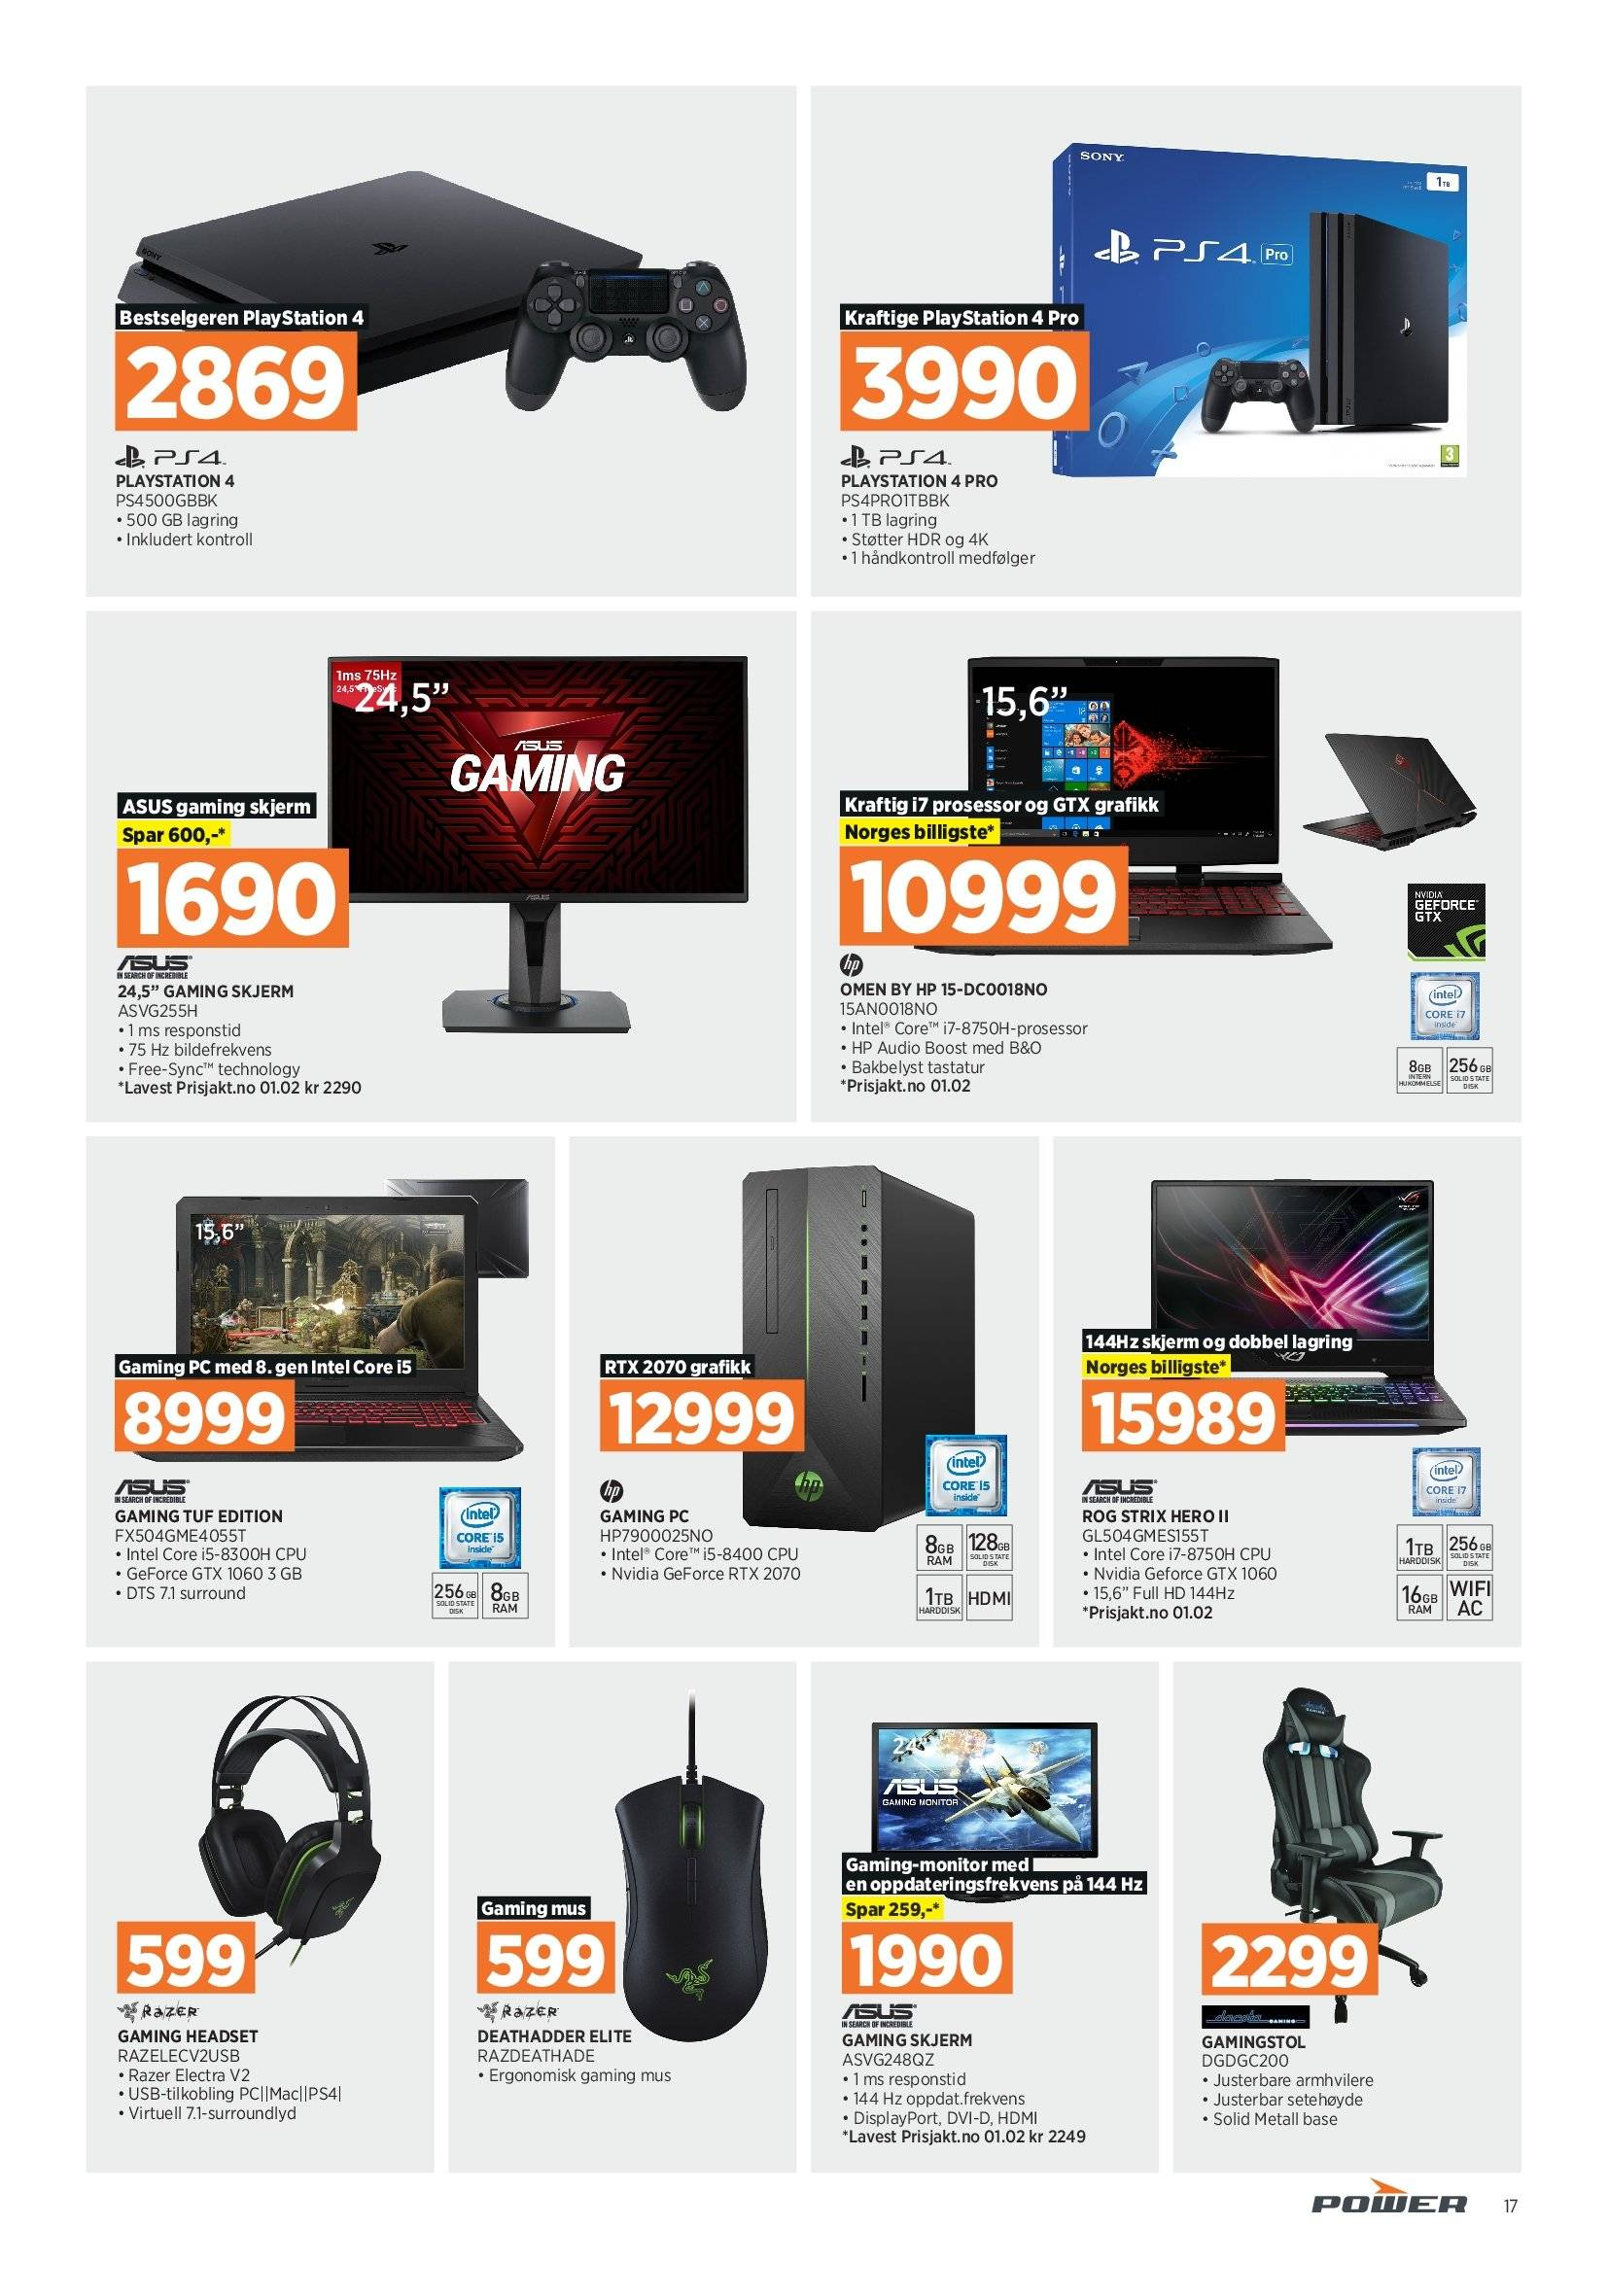 Kundeavis Power - 18.02.2019 - 23.02.2019 - Produkter fra tilbudsaviser - asus, audio, gaming headset, gaming mus, headset, hp, mus, omen, playstation, ps4, wifi, sony, skjerm. Side 17.